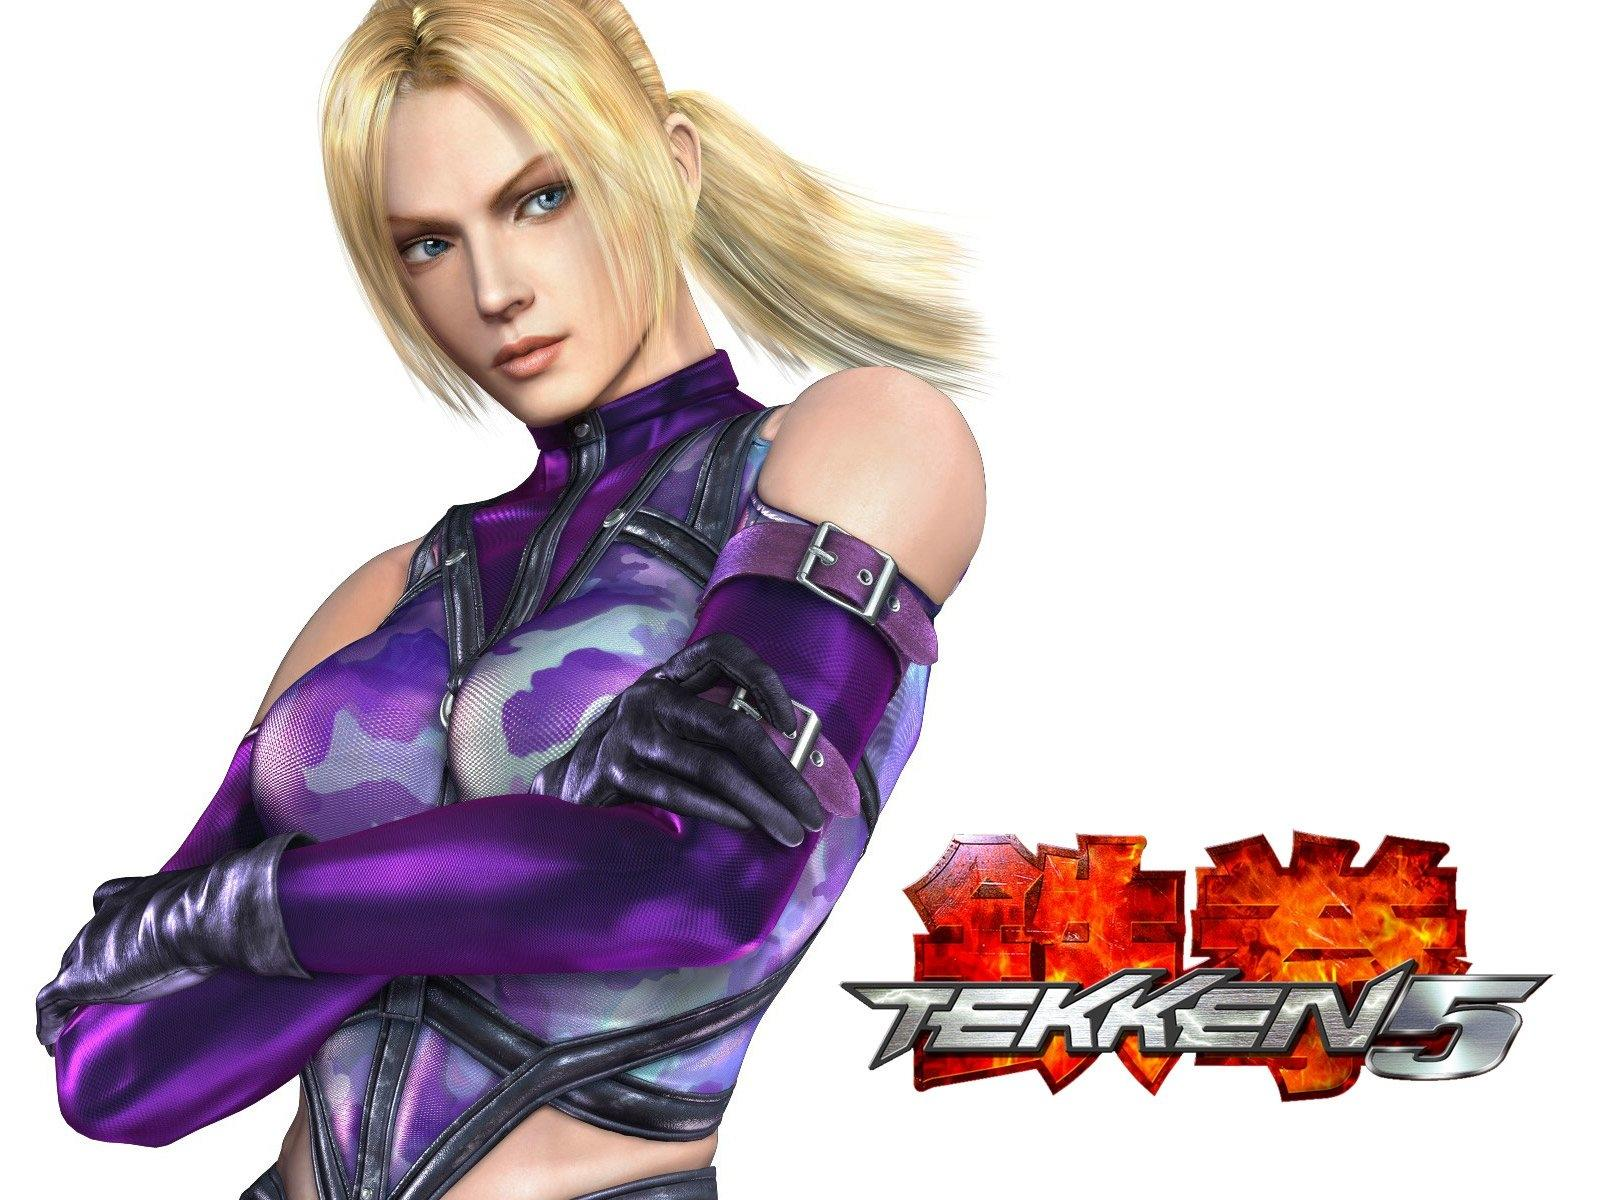 tekken 5 wallpaper hd download